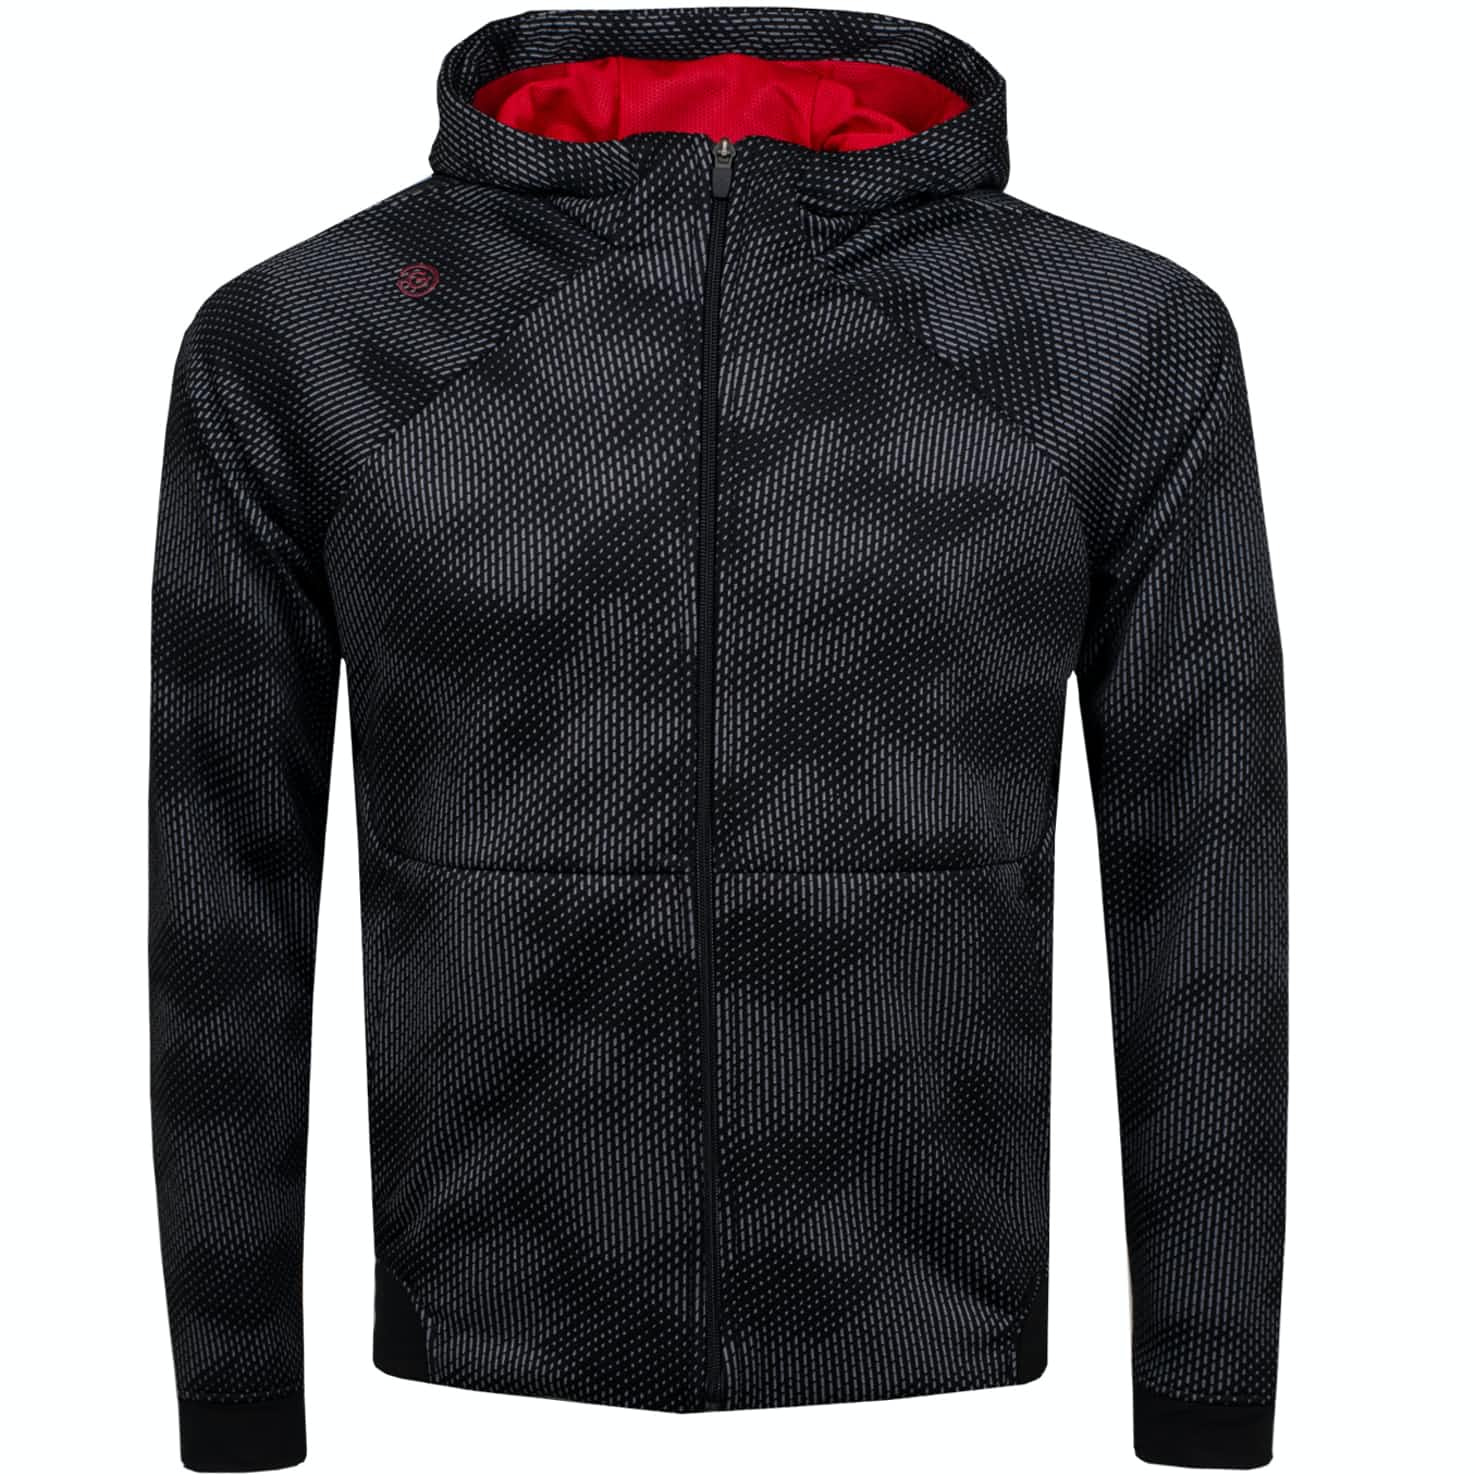 Dolph Insula Jacket Black/Red - 2020